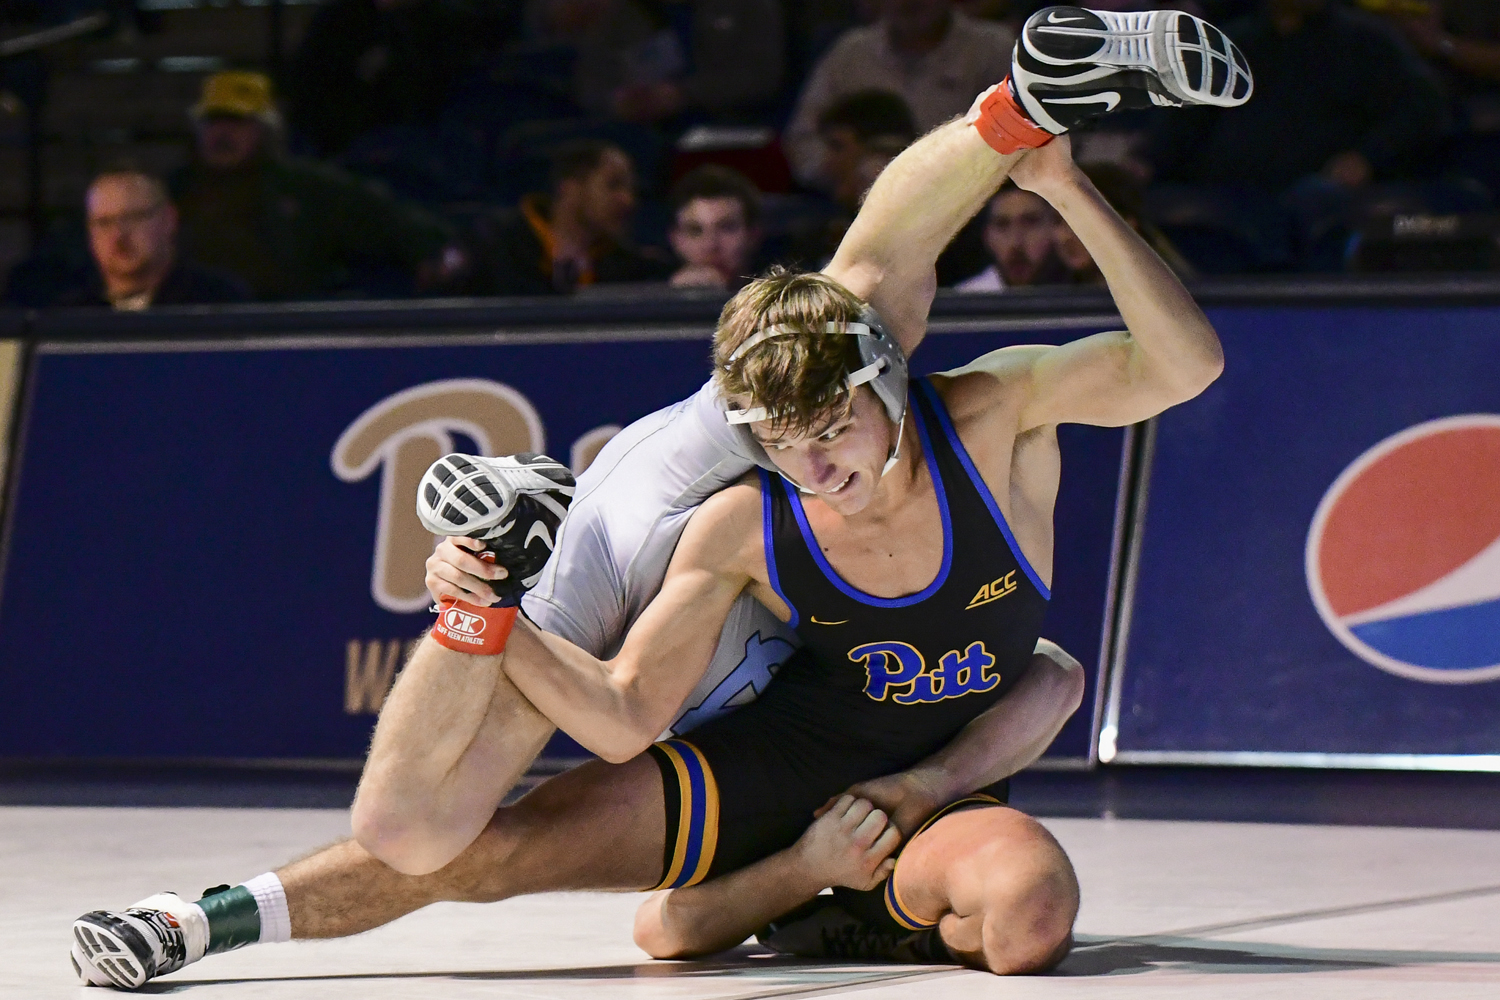 Redshirt freshman Micky Phillippi, pictured here against North Carolina on Feb. 2, won his match against Duke on Friday.